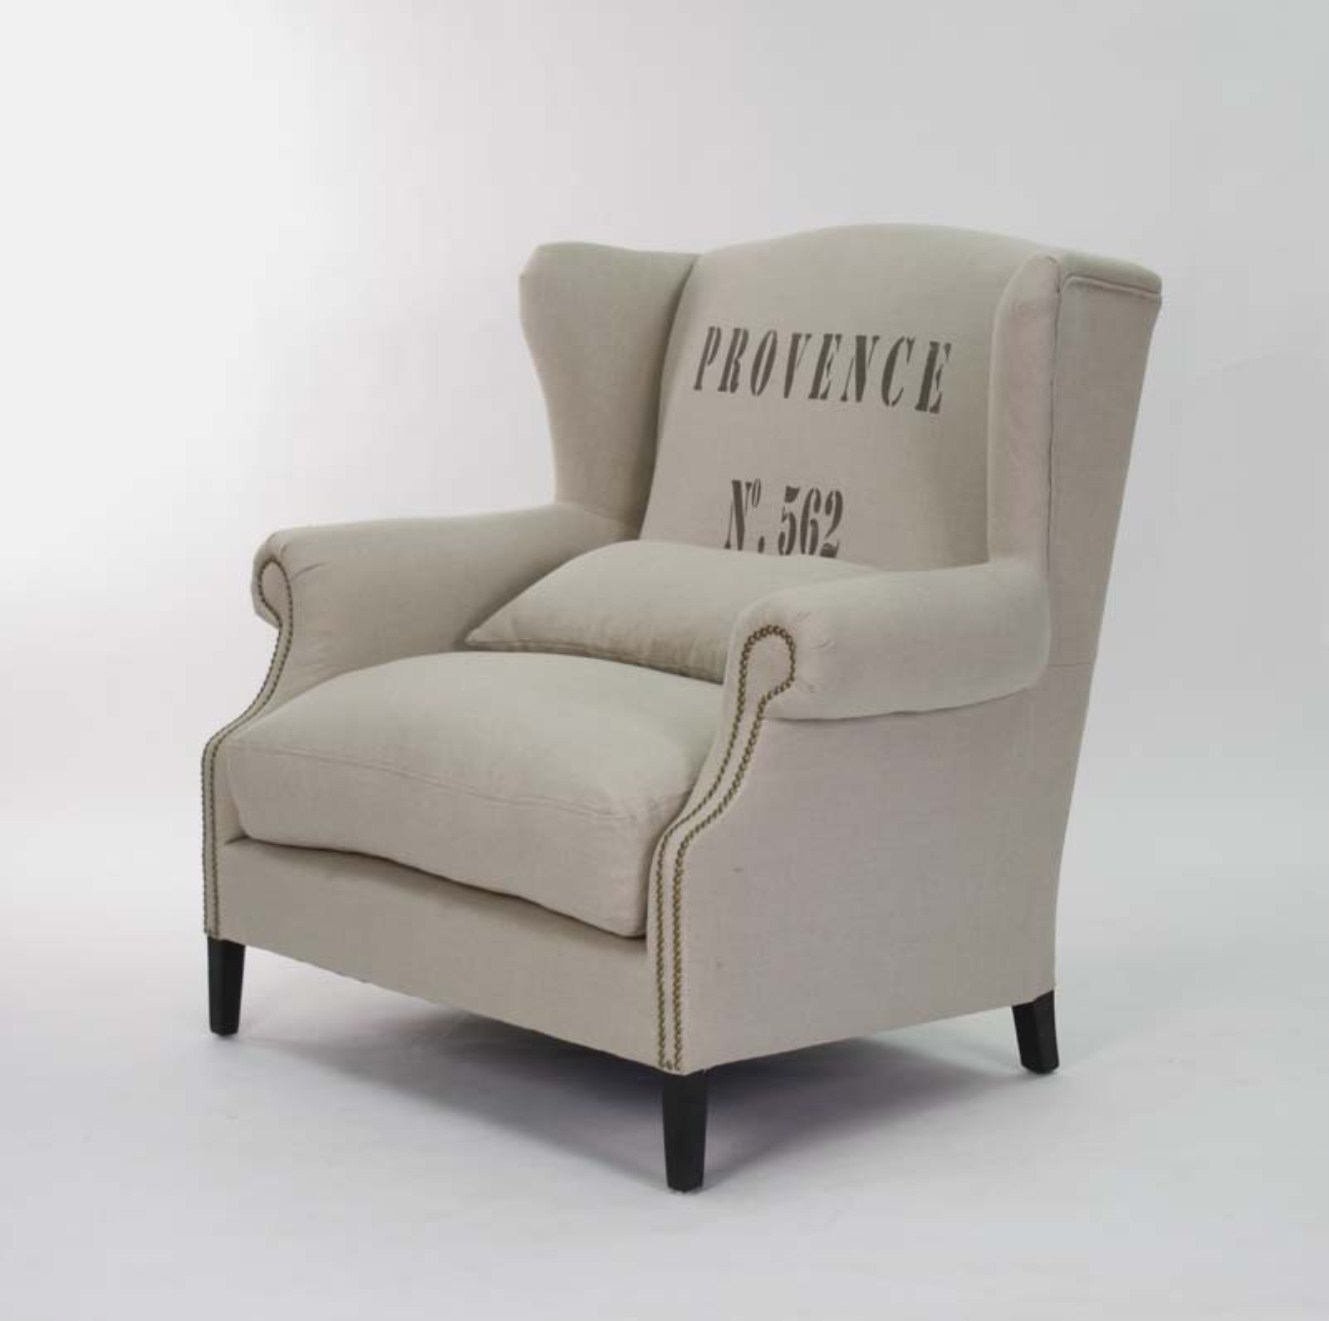 French Country Script Chairs ~ Napoleon half wingback chair provence french script